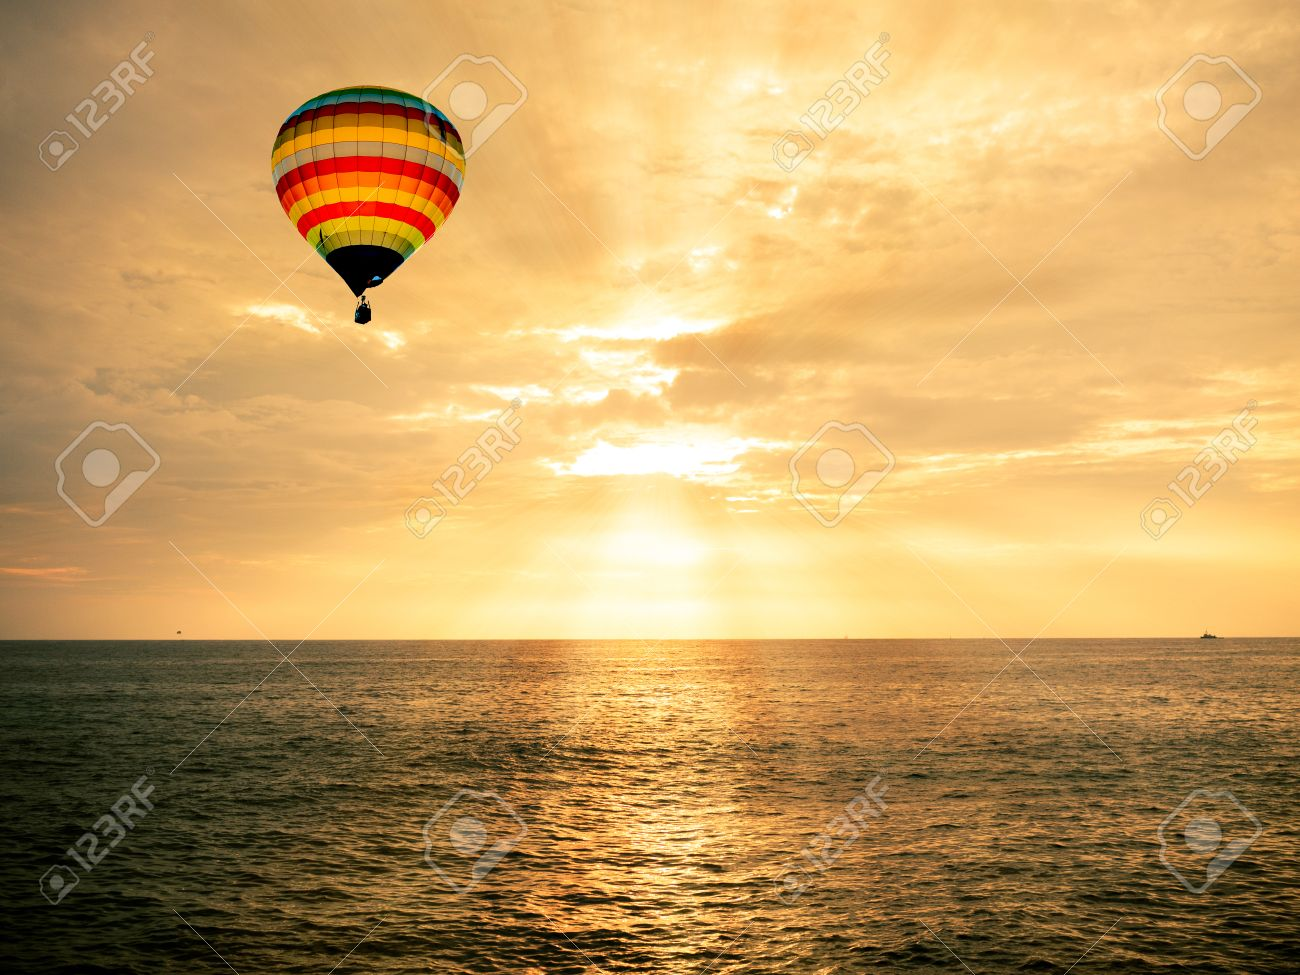 Hot air balloon over the sea at sunset - 32757849